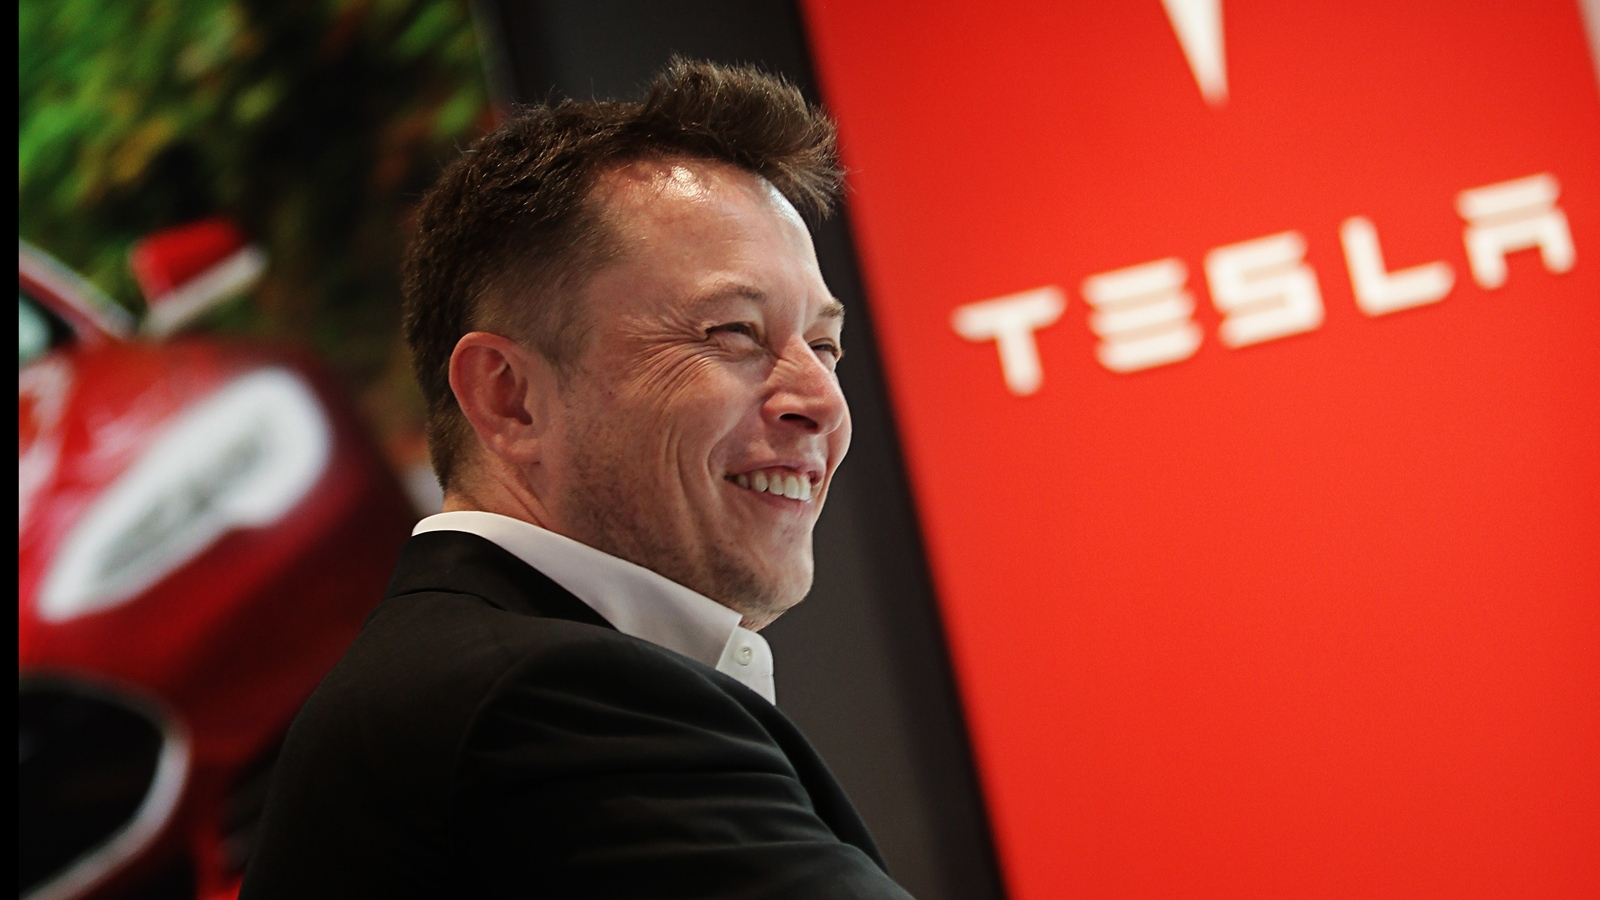 Is Tesla Ceo Elon Musk Really A Common Day Slave Driver